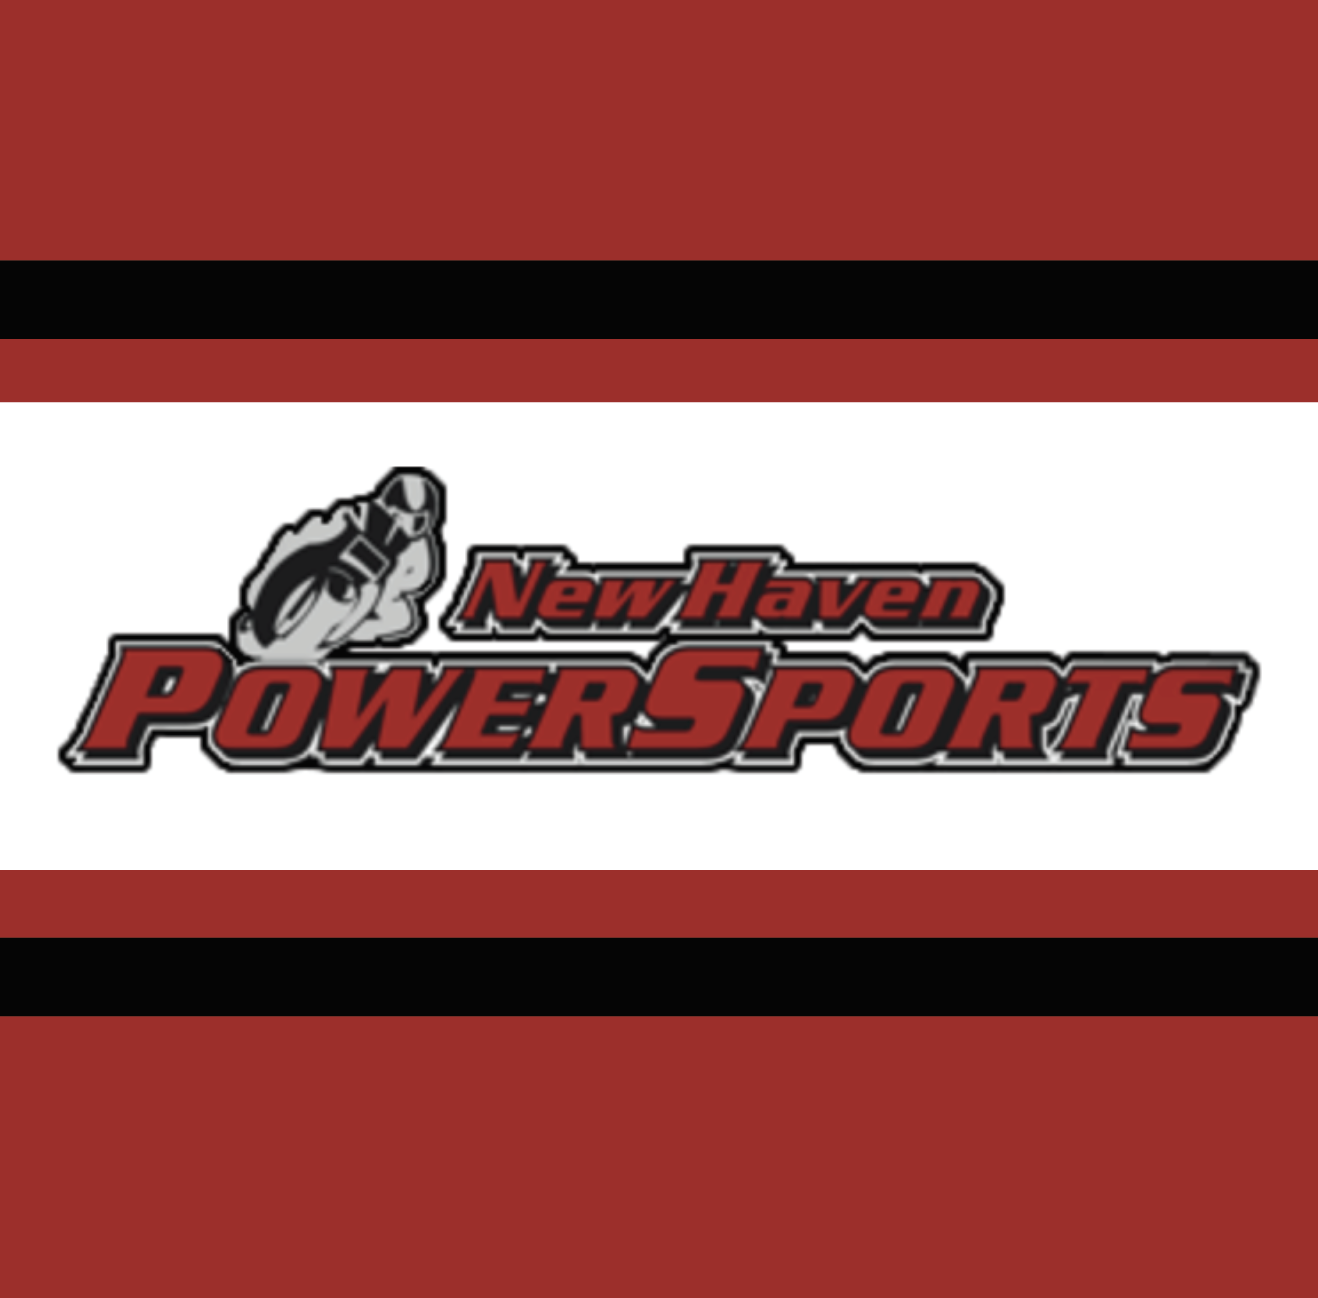 New Haven Powersports Inc.